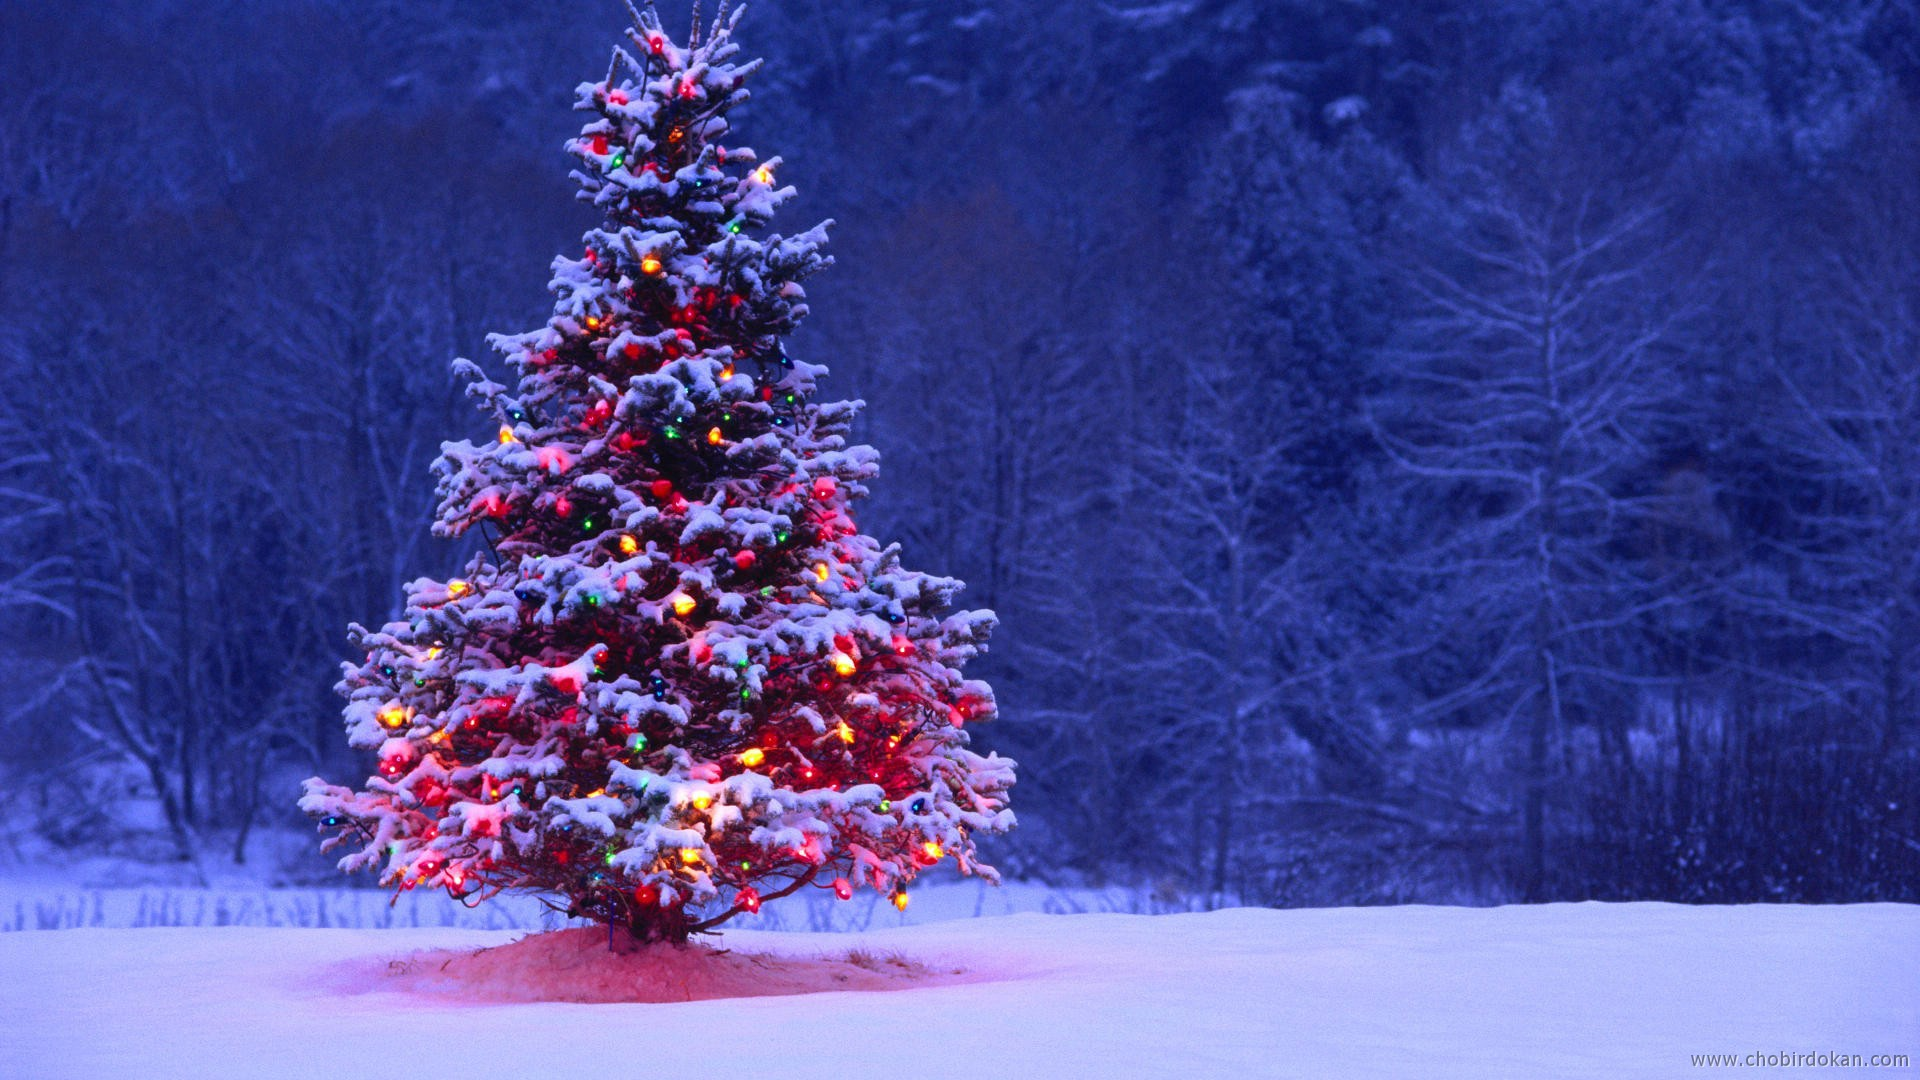 2016 Christmas Wallpaper HD Tree With Heavy Snow 19201080 3